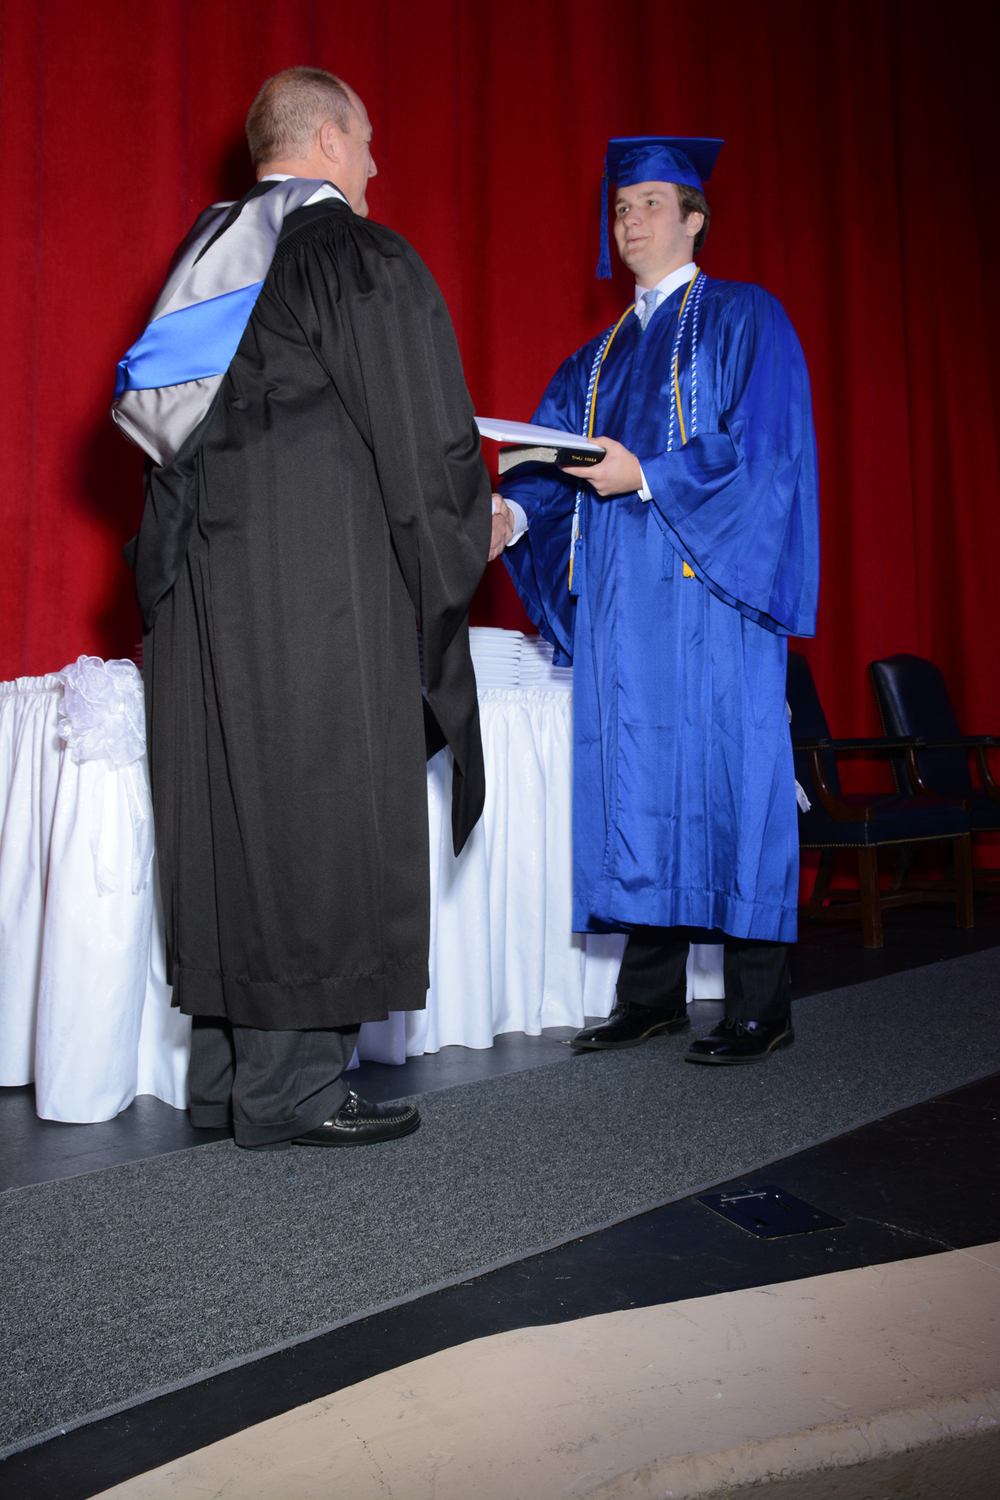 May16 GraduationPhotos34.jpg